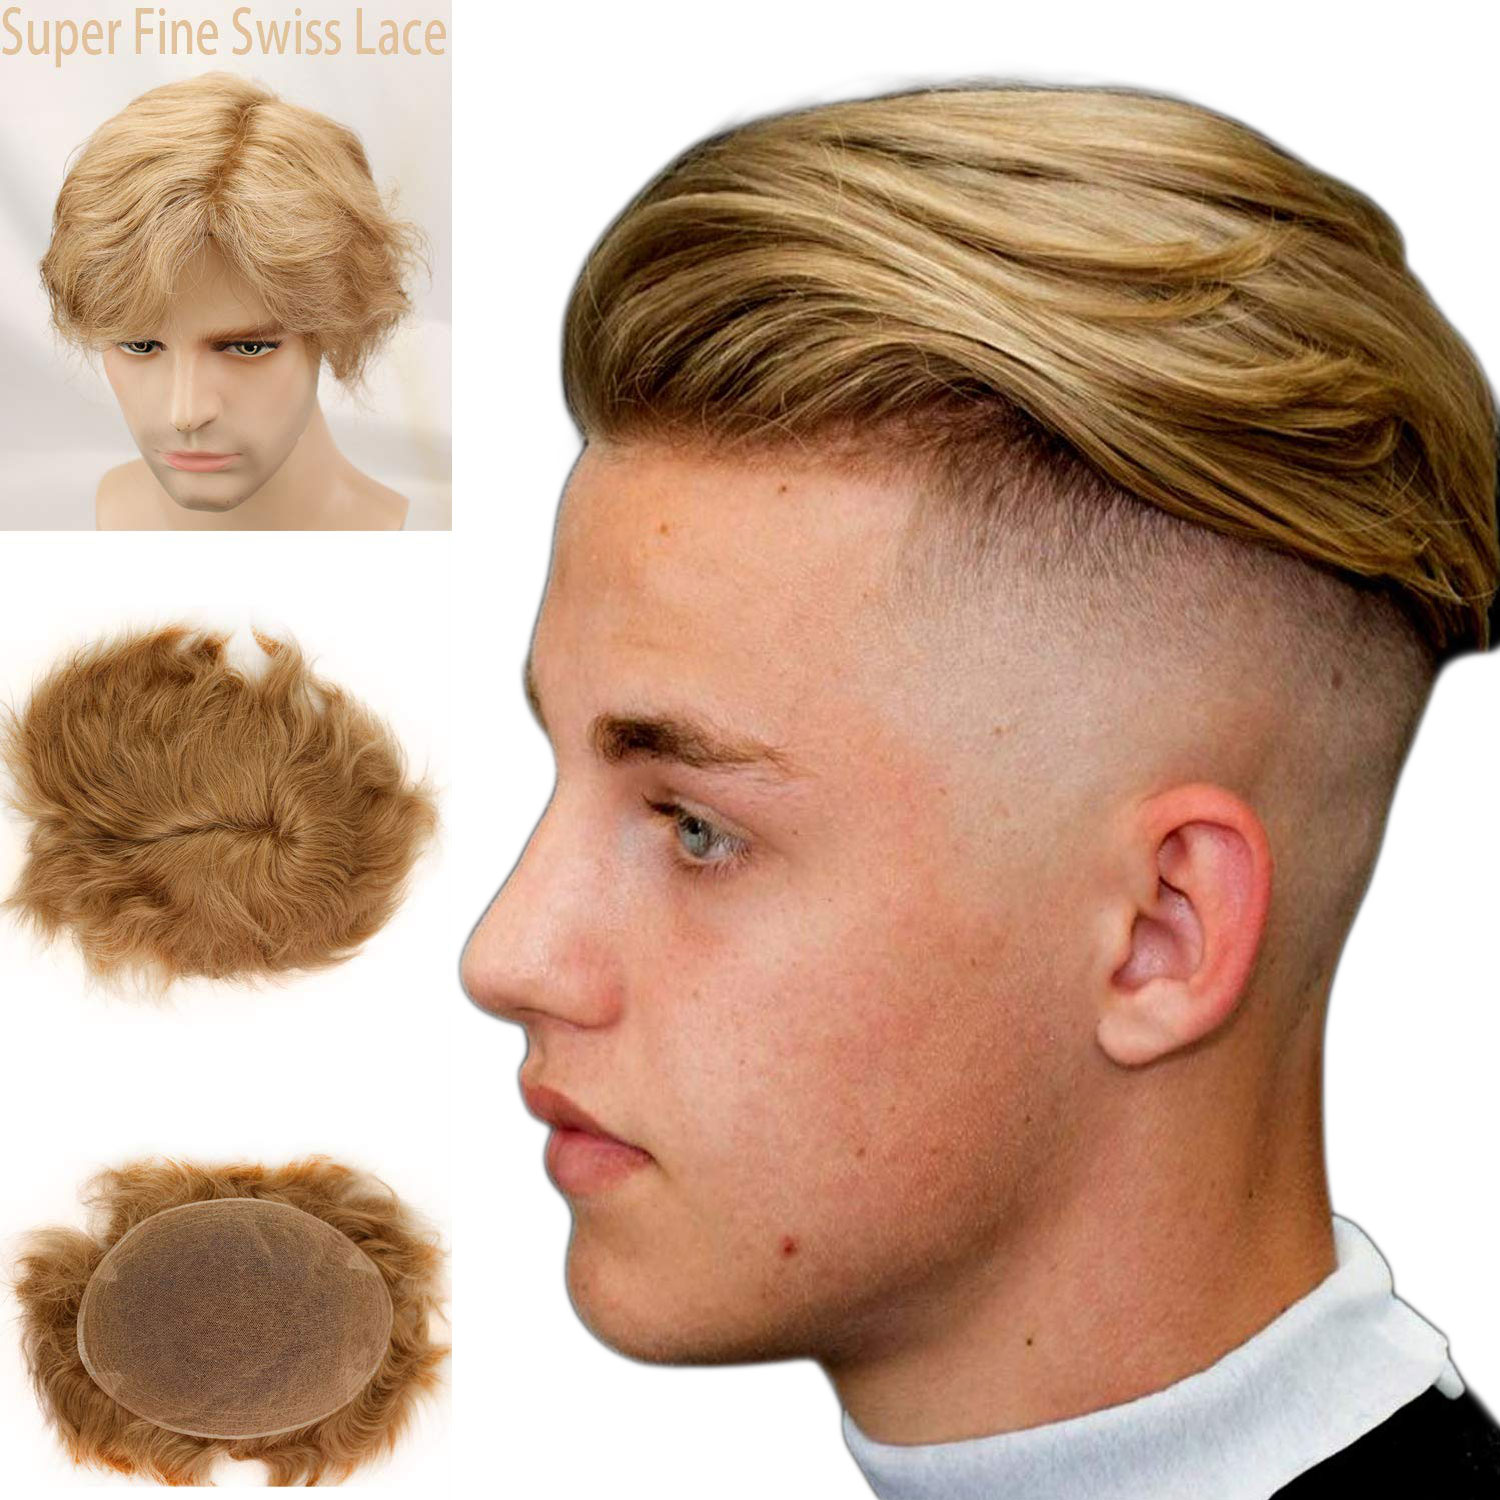 Swiss Full Lace Men's Toupee European Real Human Hair Replacement For Men Hairpiece #21 Ash Blonde Color 10X8